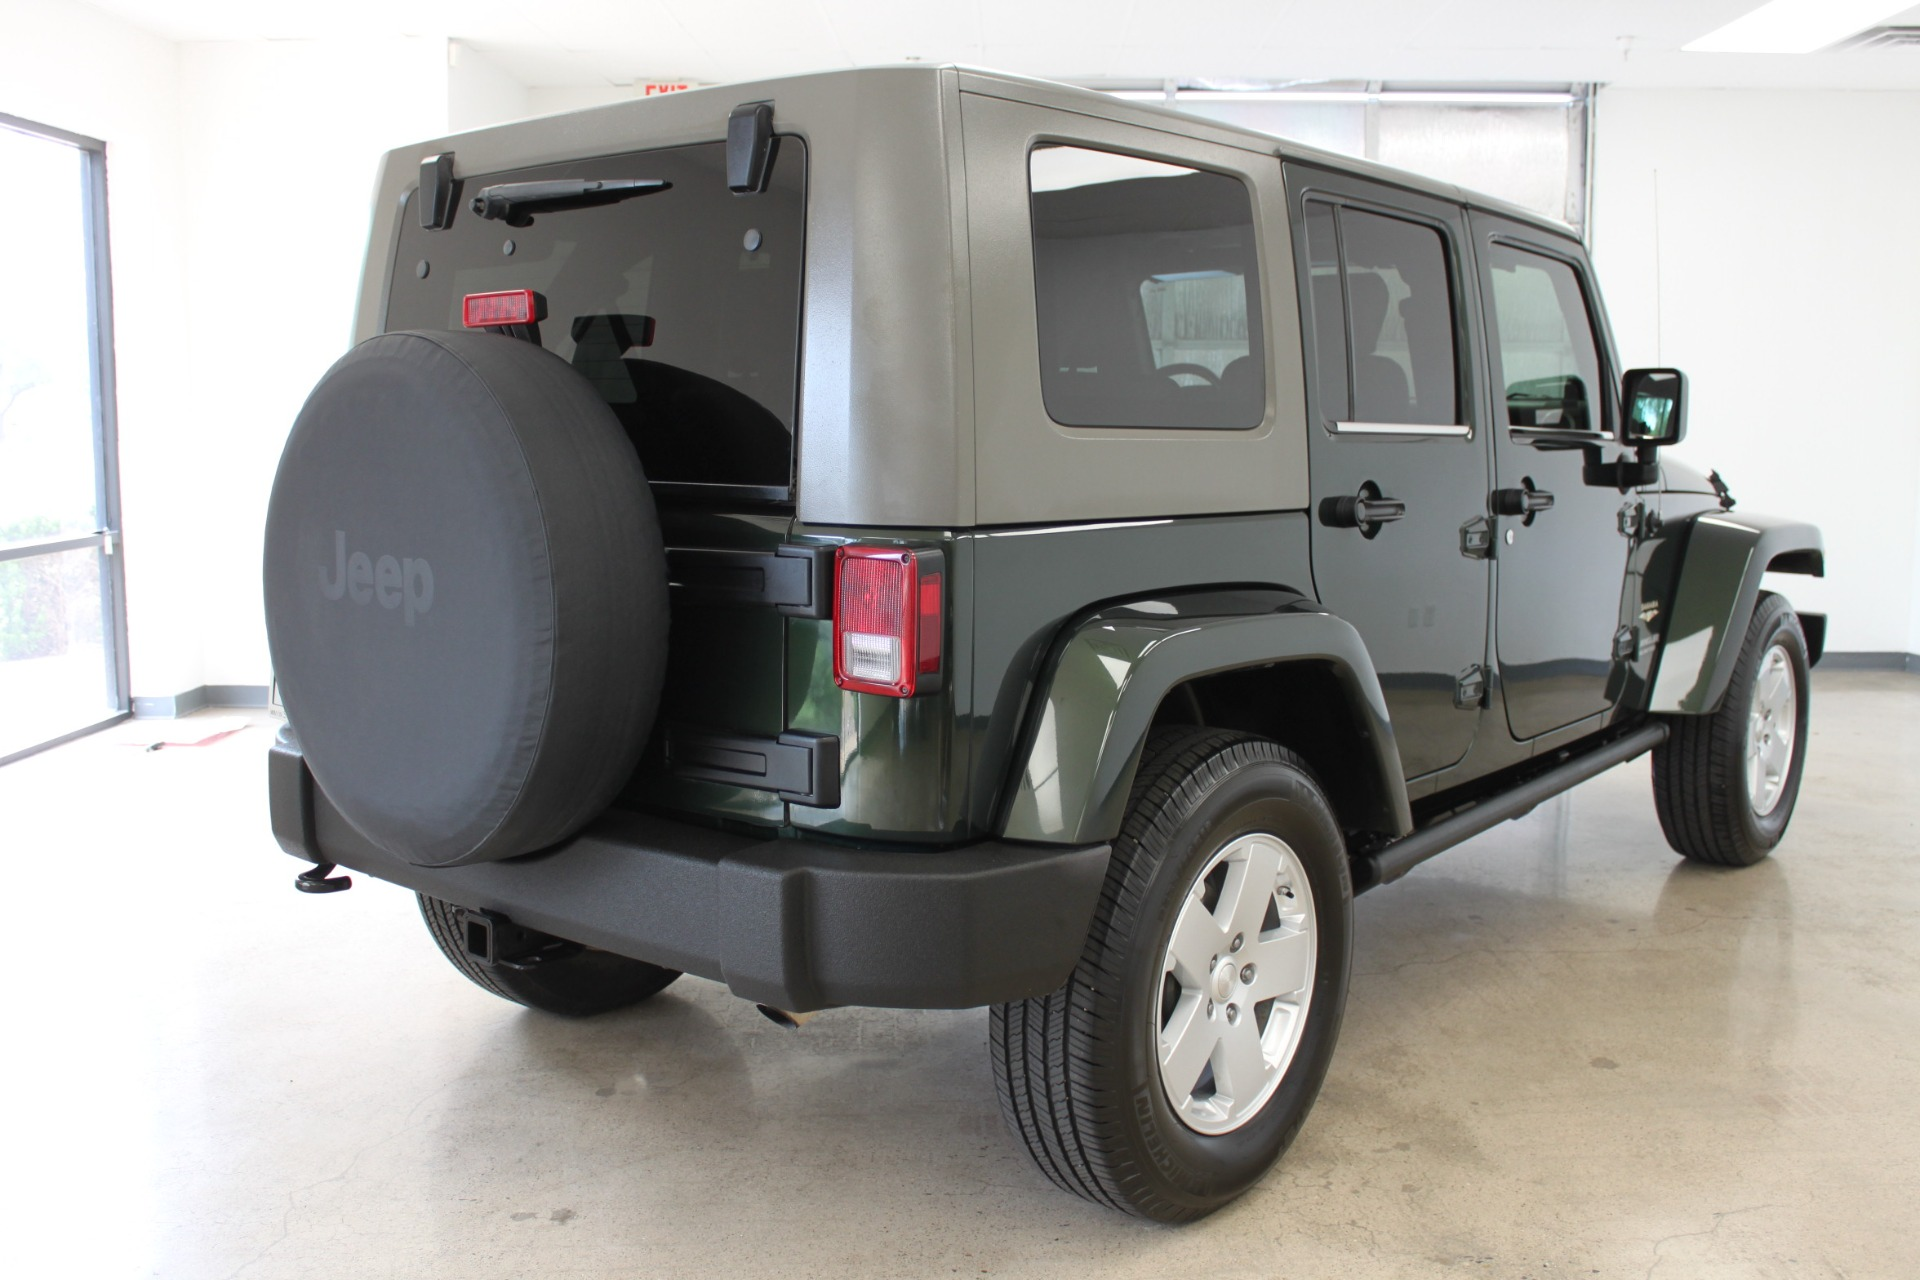 Used-2010-Jeep-Wrangler-Unlimited-Sahara-4X4-Collector